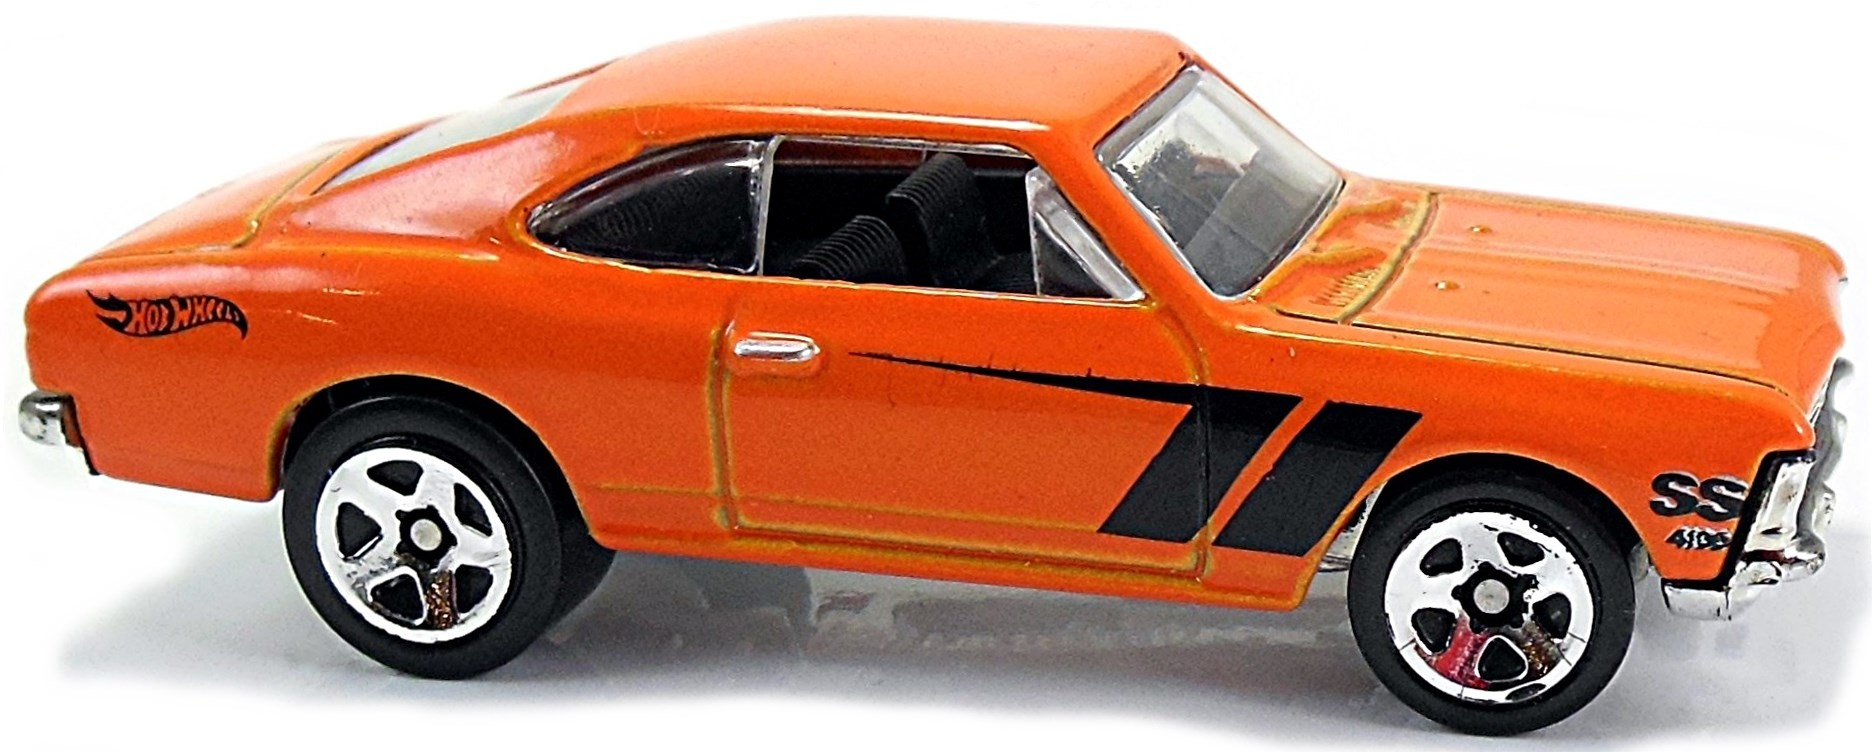 2017 9-Car Gift Pack Exclusives | Hot Wheels Newsletter